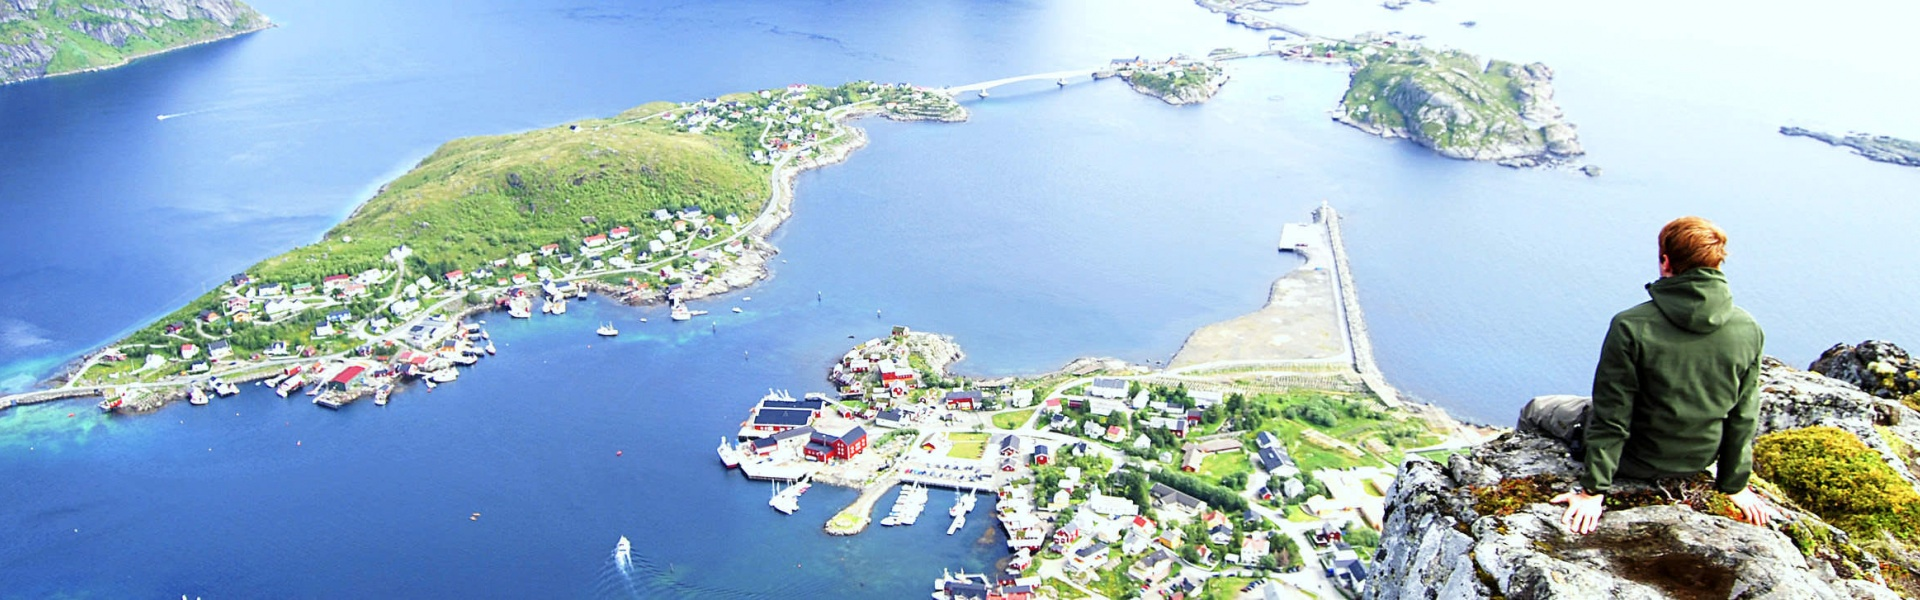 Lofoten Islands Tour